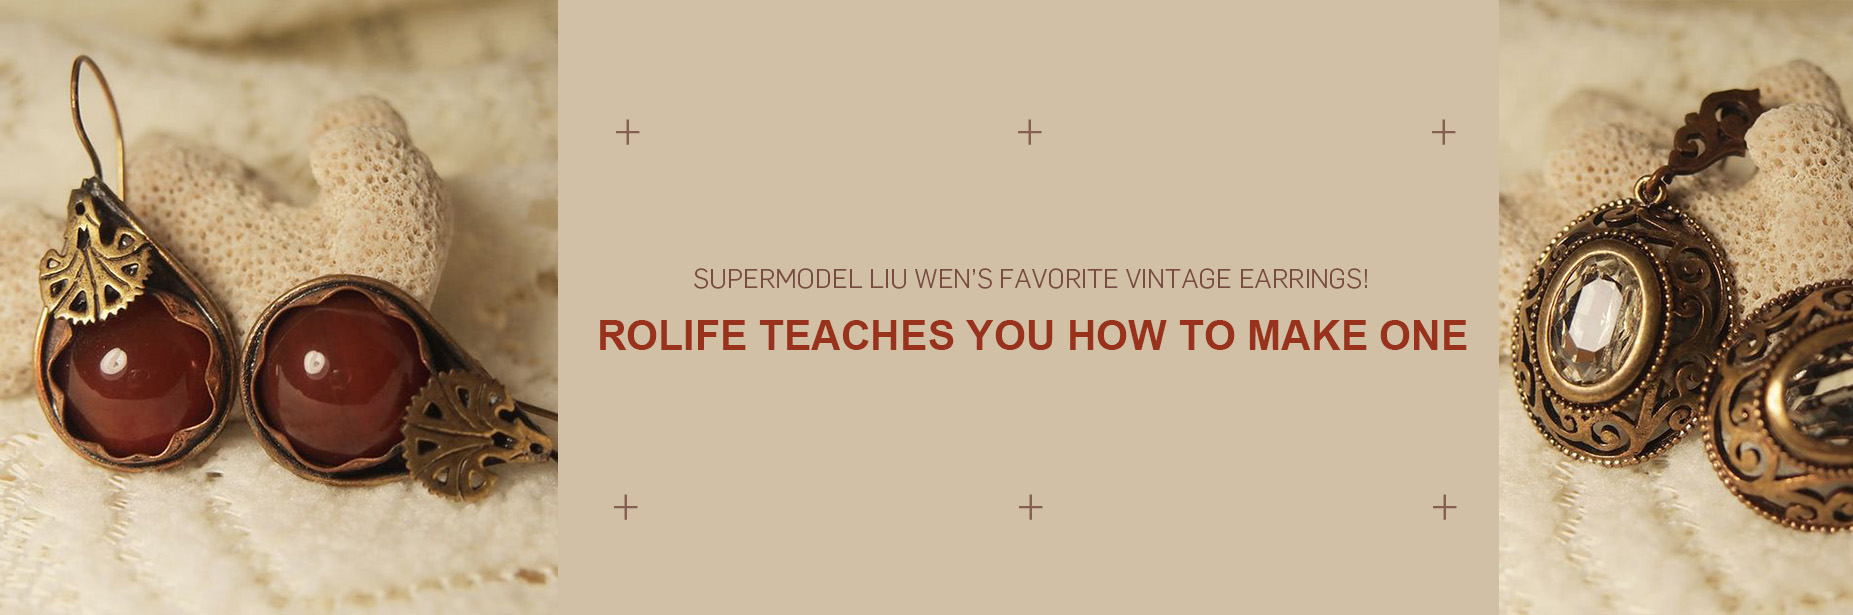 Supermodel Liu Wen's favorite vintage earrings! Rolife teaches you how to make one